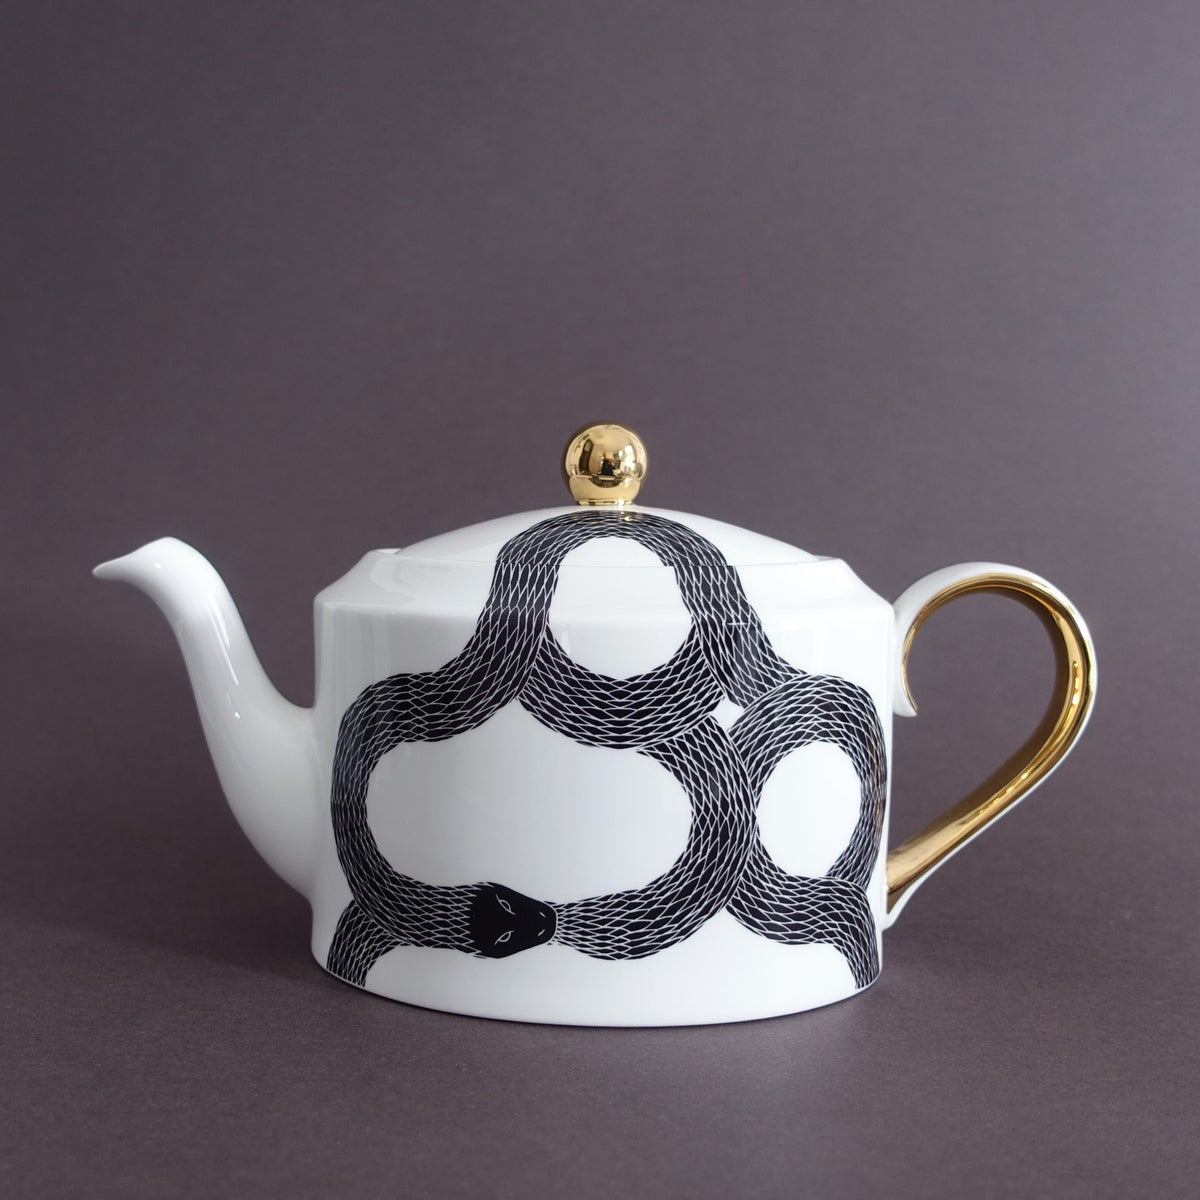 Image of Ouroboros Tea/Coffee Pot